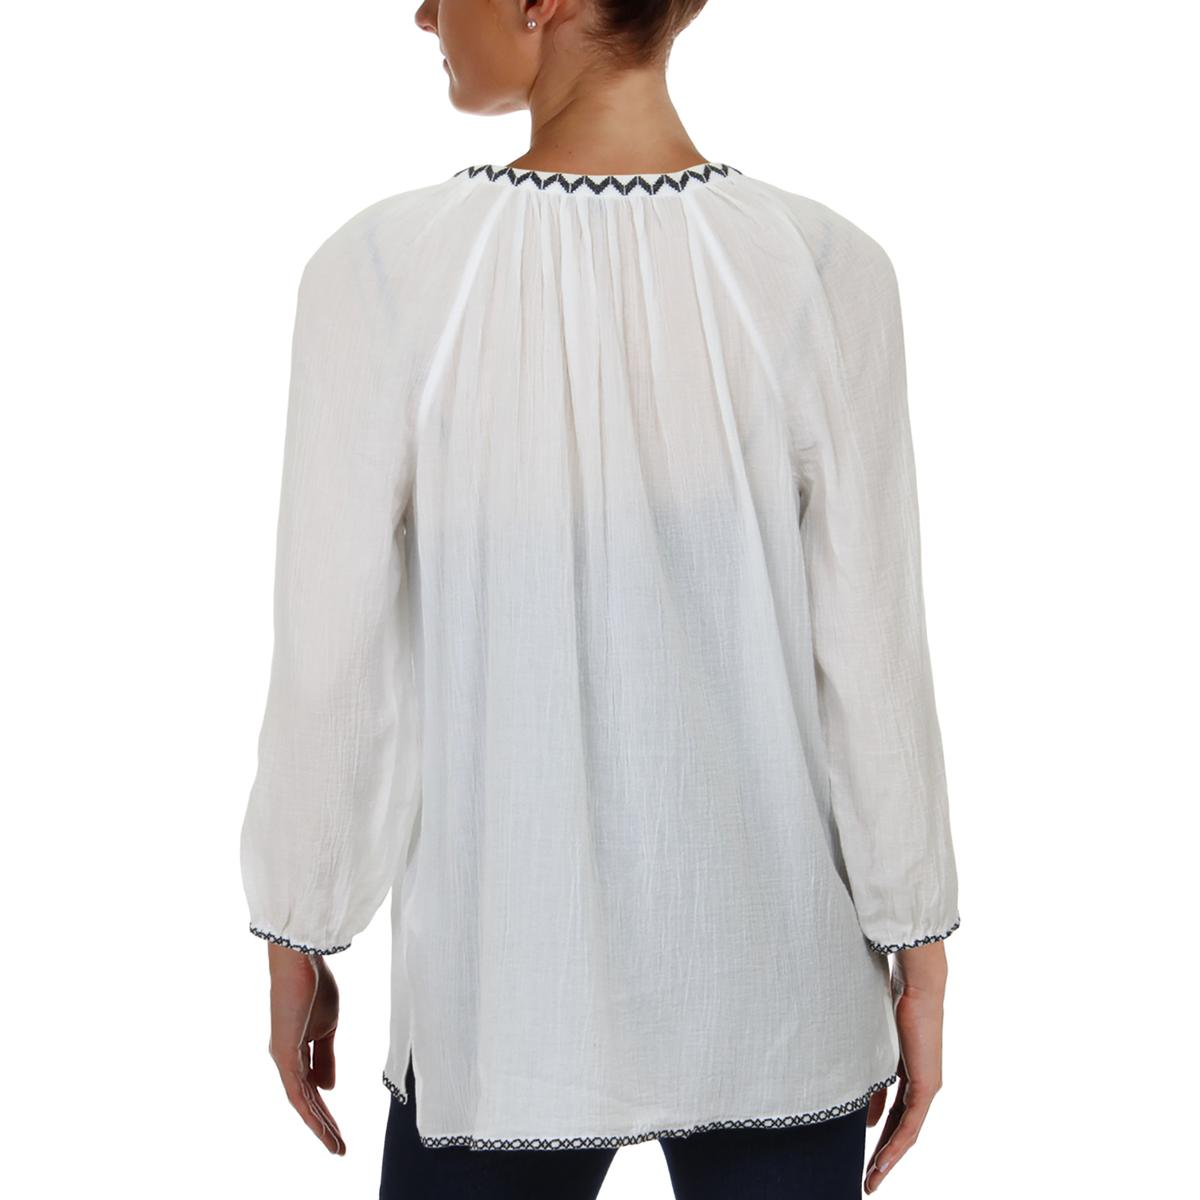 3a76b120aaca5a NYDJ Womens White Embroidered Keyhole Pleated Peasant Top Blouse XS ...